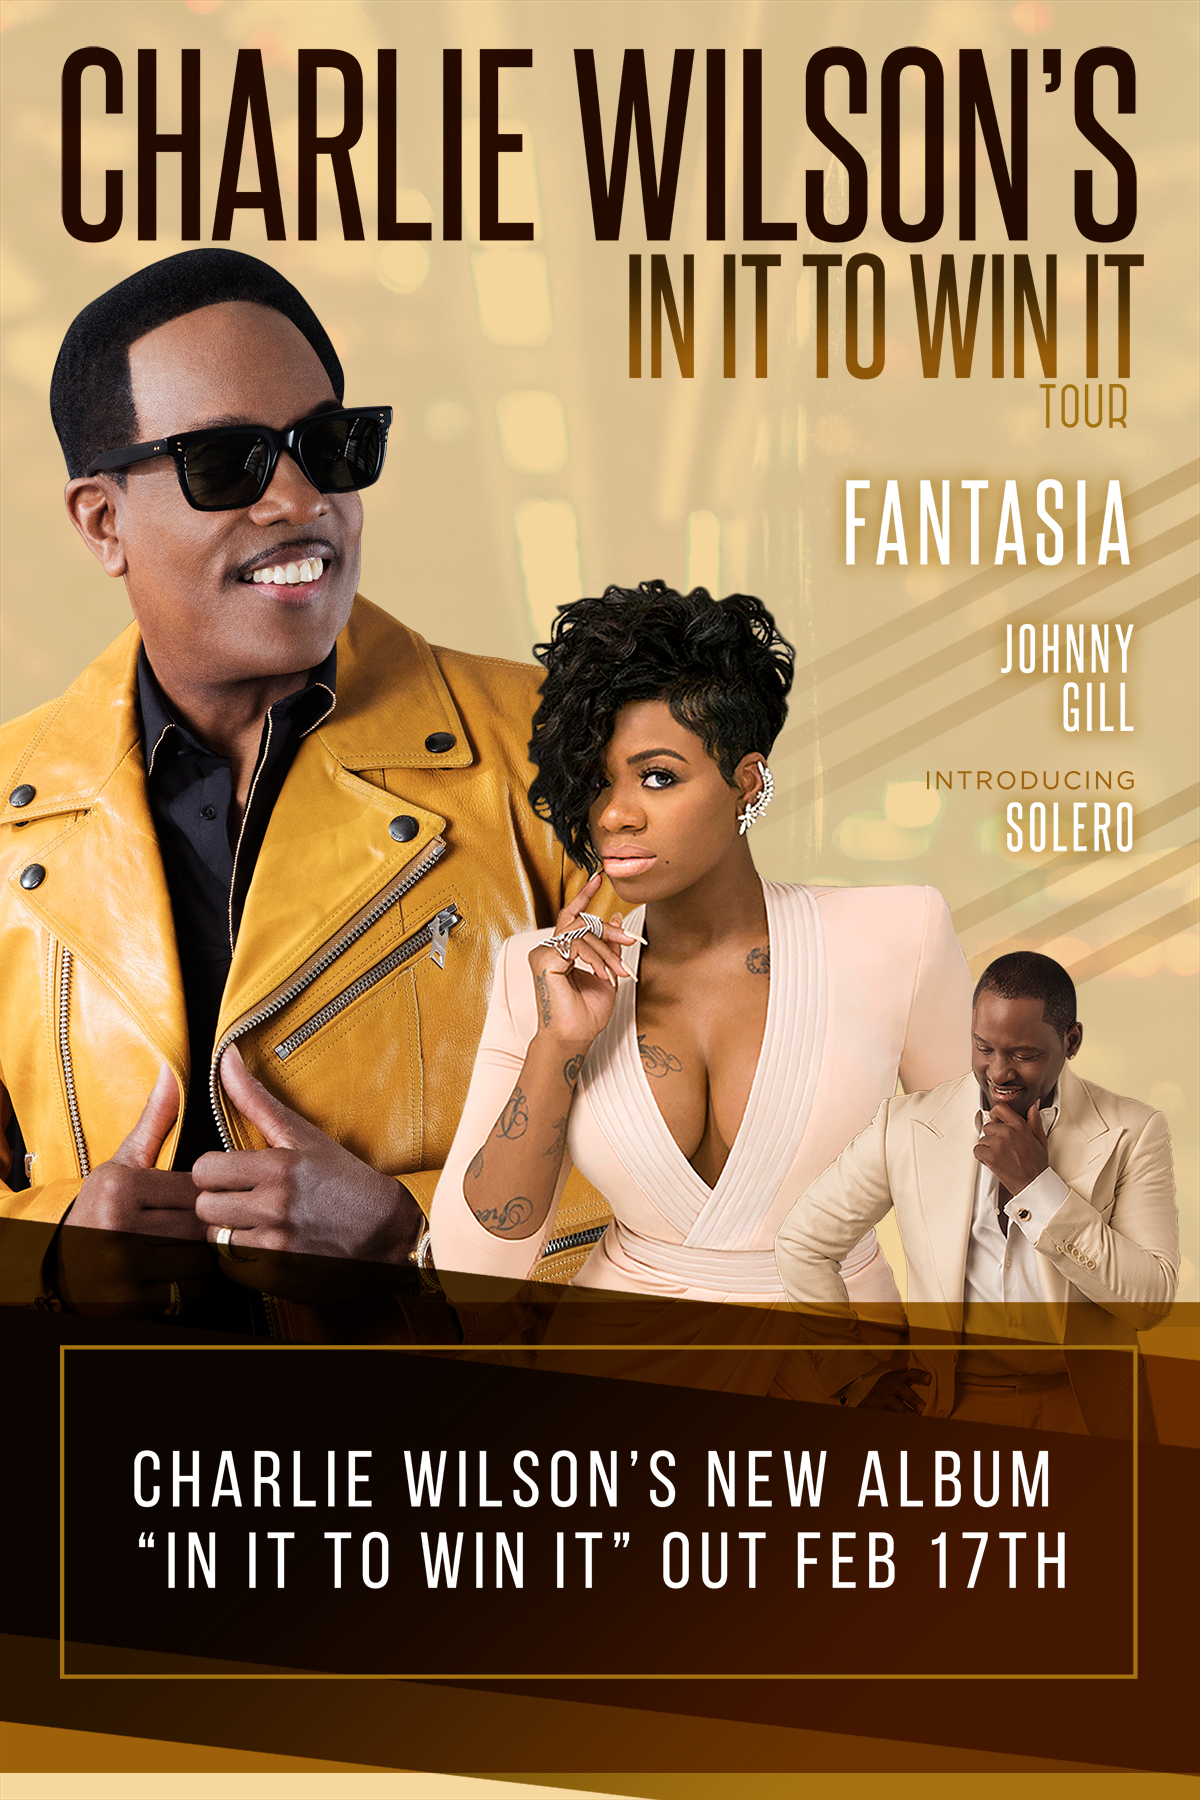 Rb Icon Charlie Wilson Announces The Release Of His New Album In It